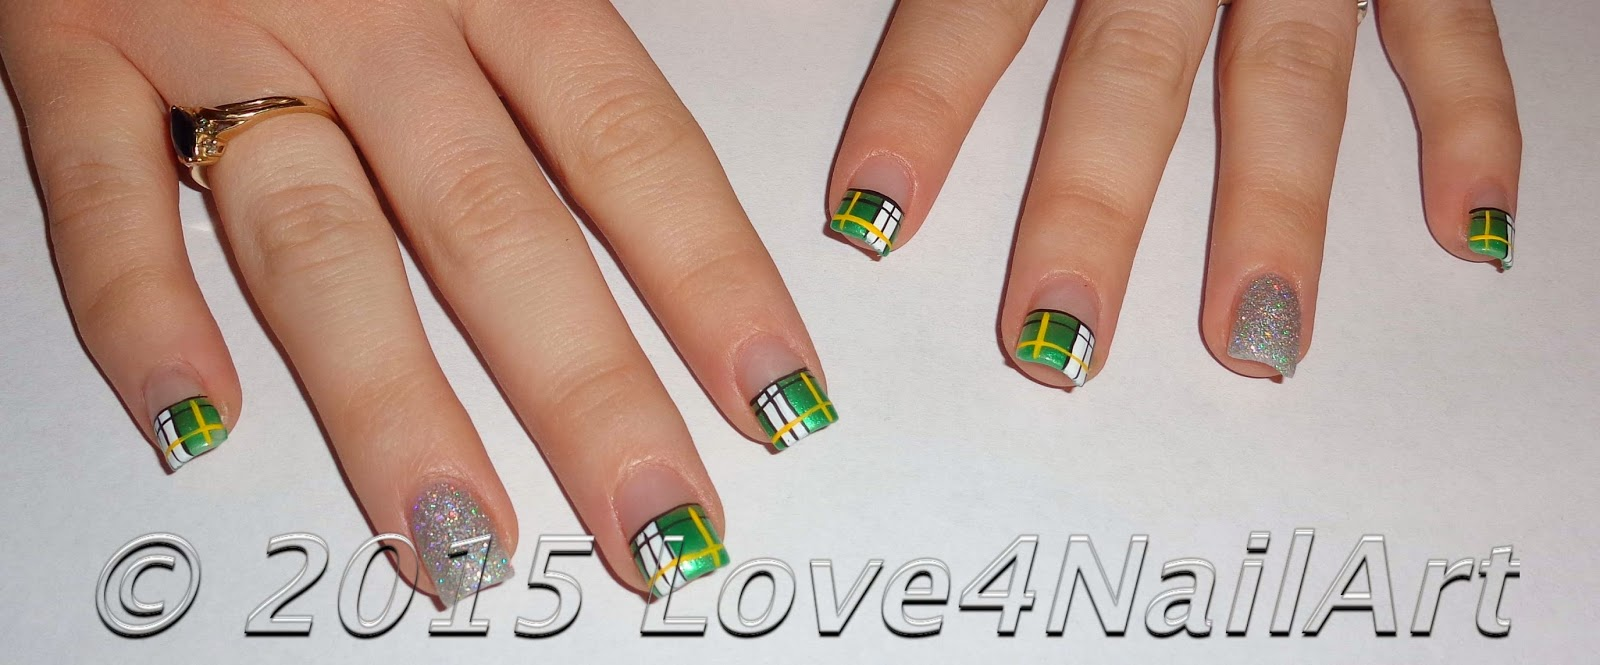 Acrylic Nail Designs Green Bay Packers: Packers neon yellow nails ...